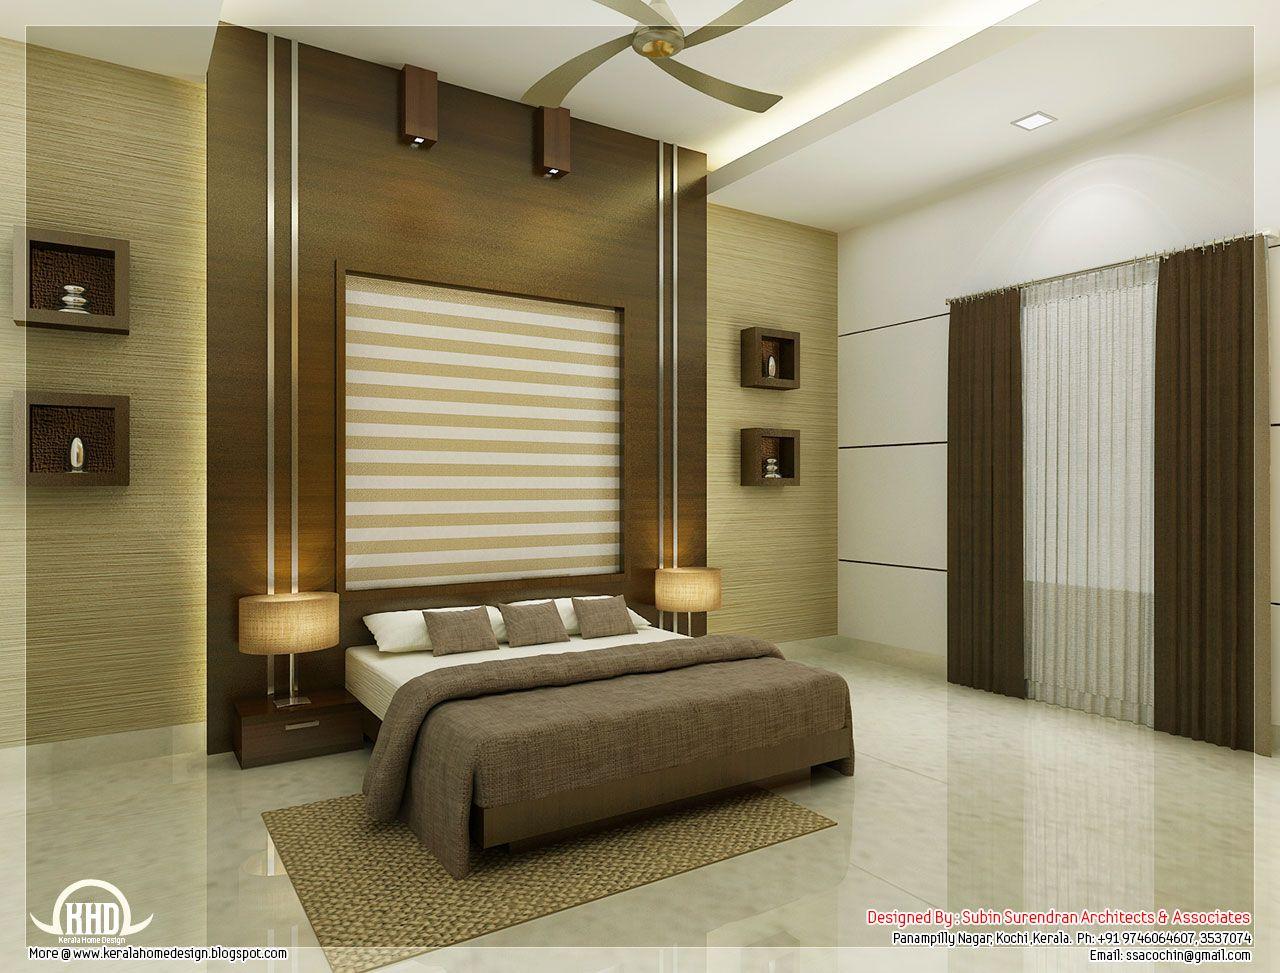 Need Some Fresh Bedroom Decorating Ideas Use These Beautiful Designs To Inspire Your New Dream Room Plan A Well Design That Will Provide